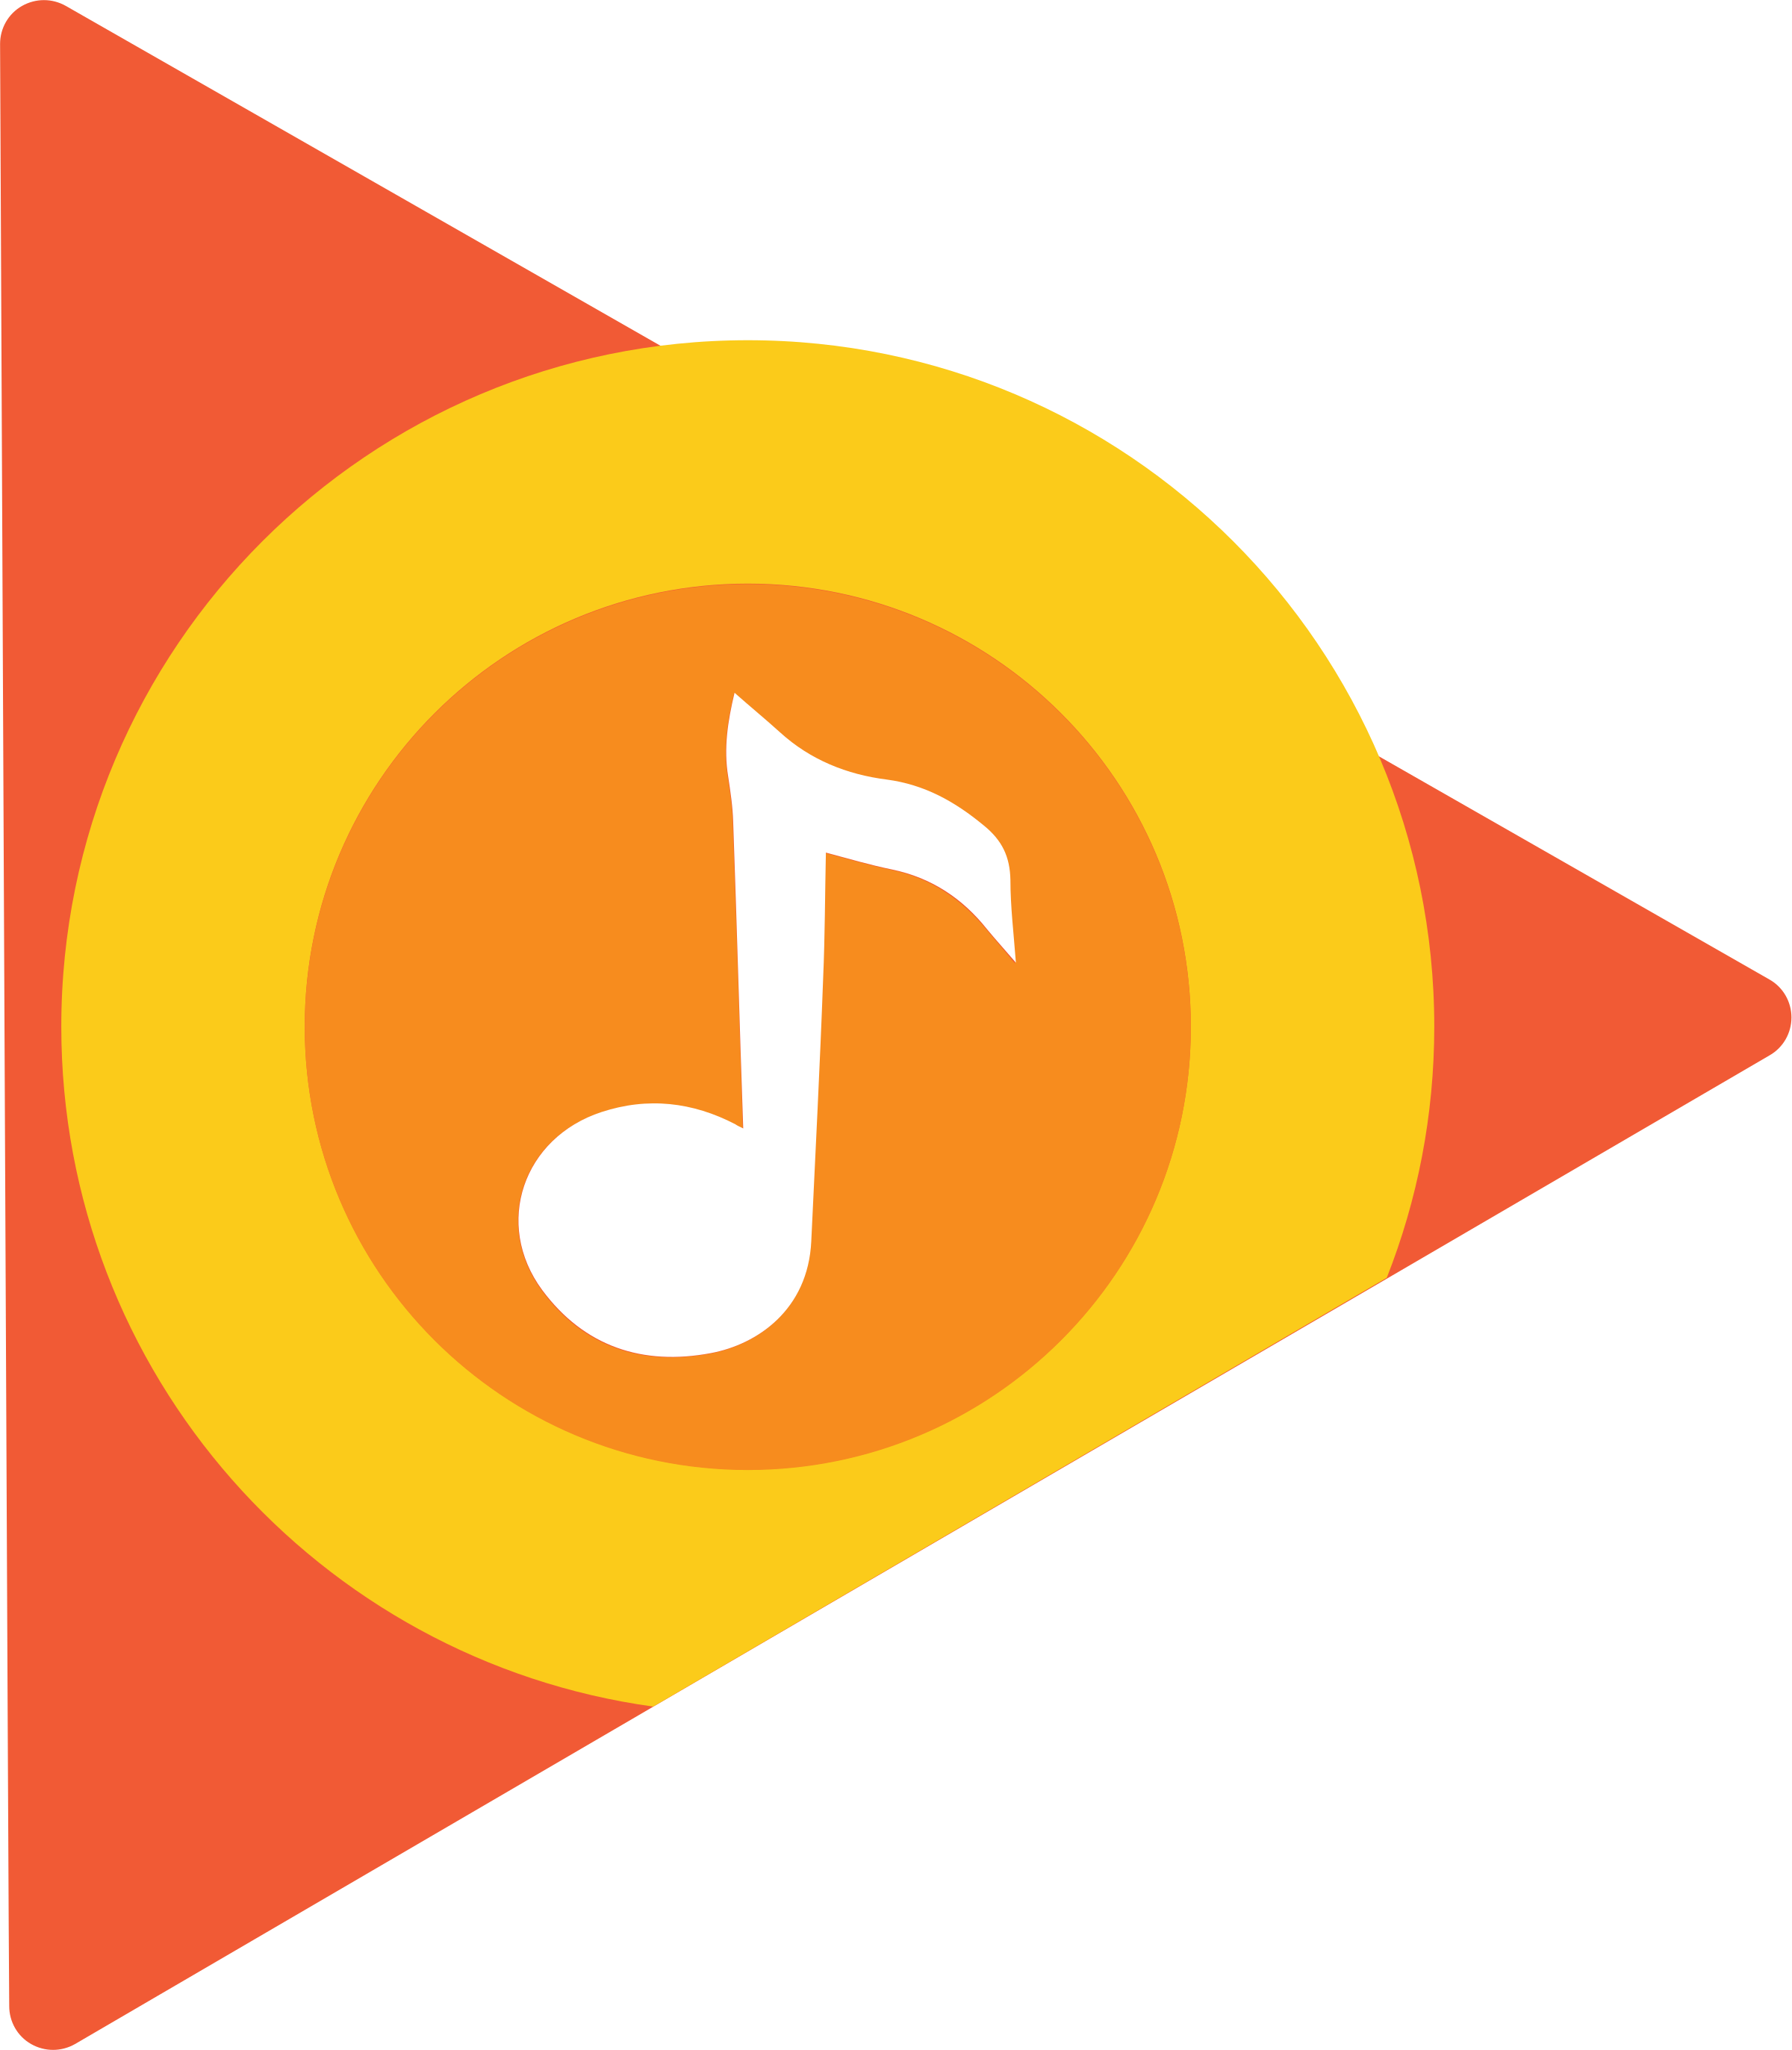 Google play music logo png. Transparent svg vector freebie